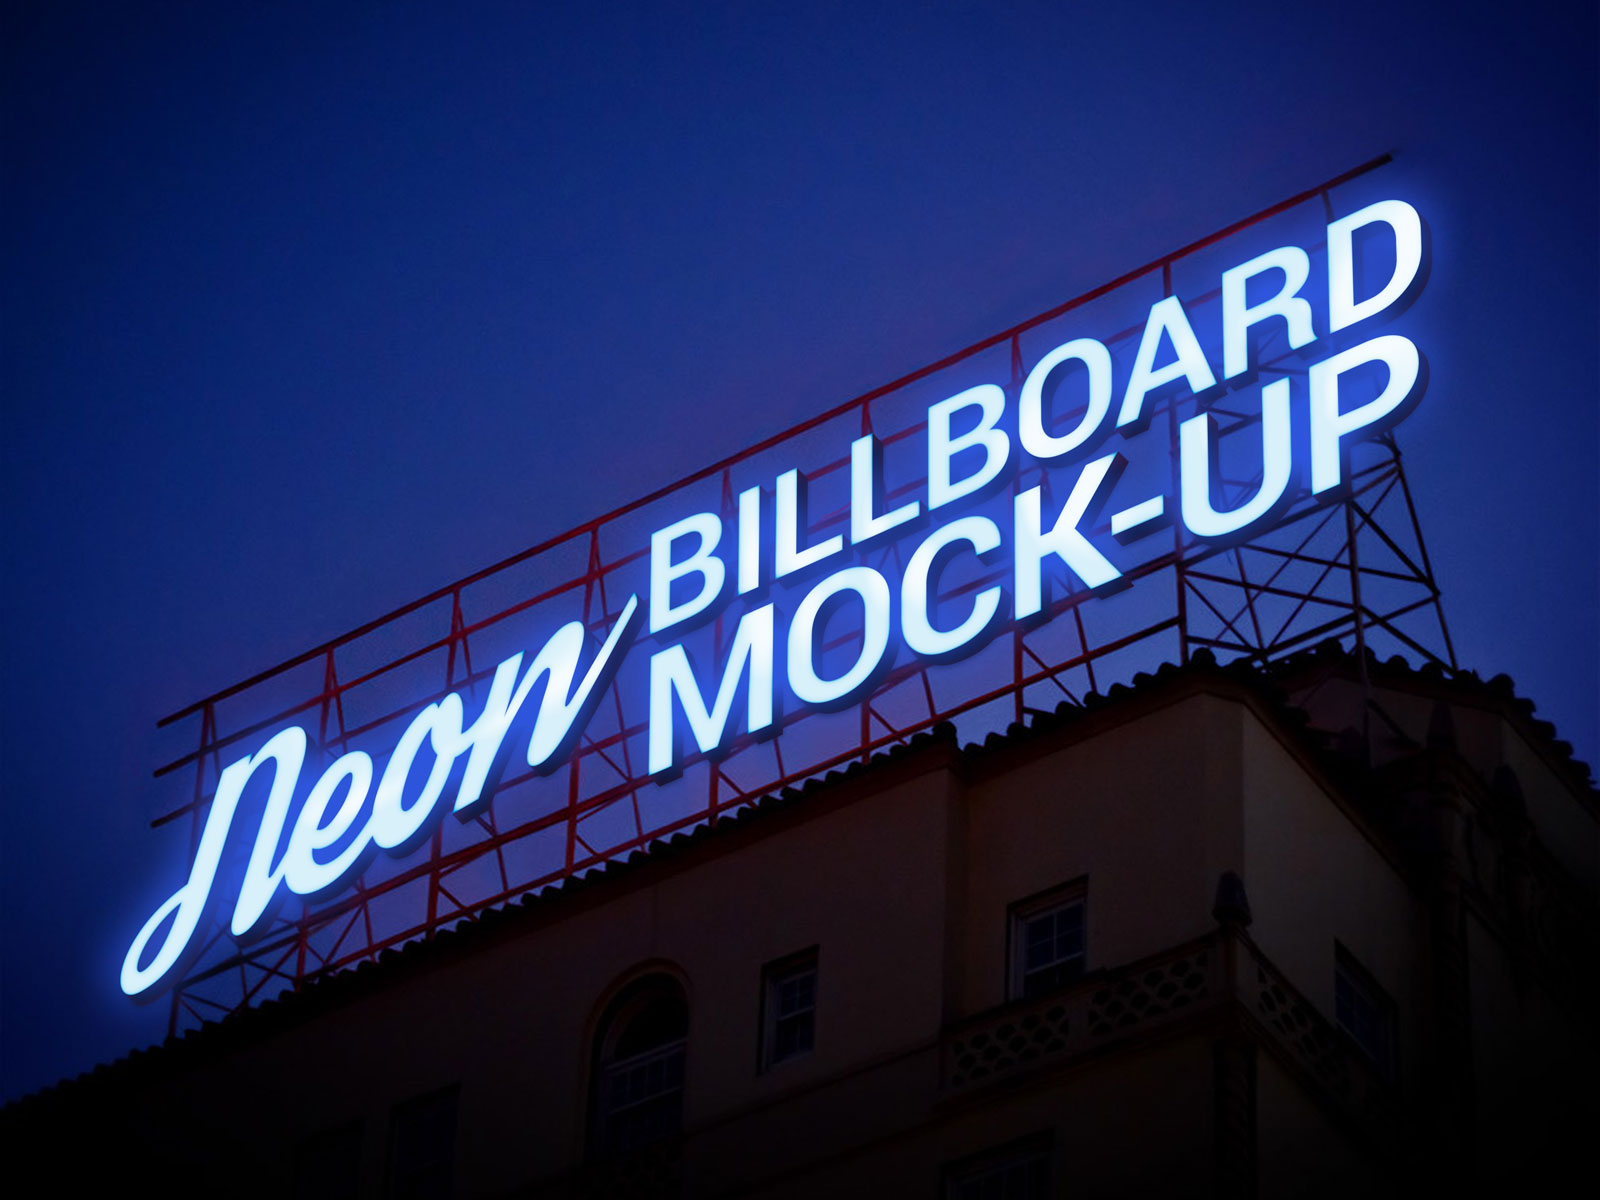 Free-Electronic-Neon-Sign-Billboard-Mockup-PSD-2